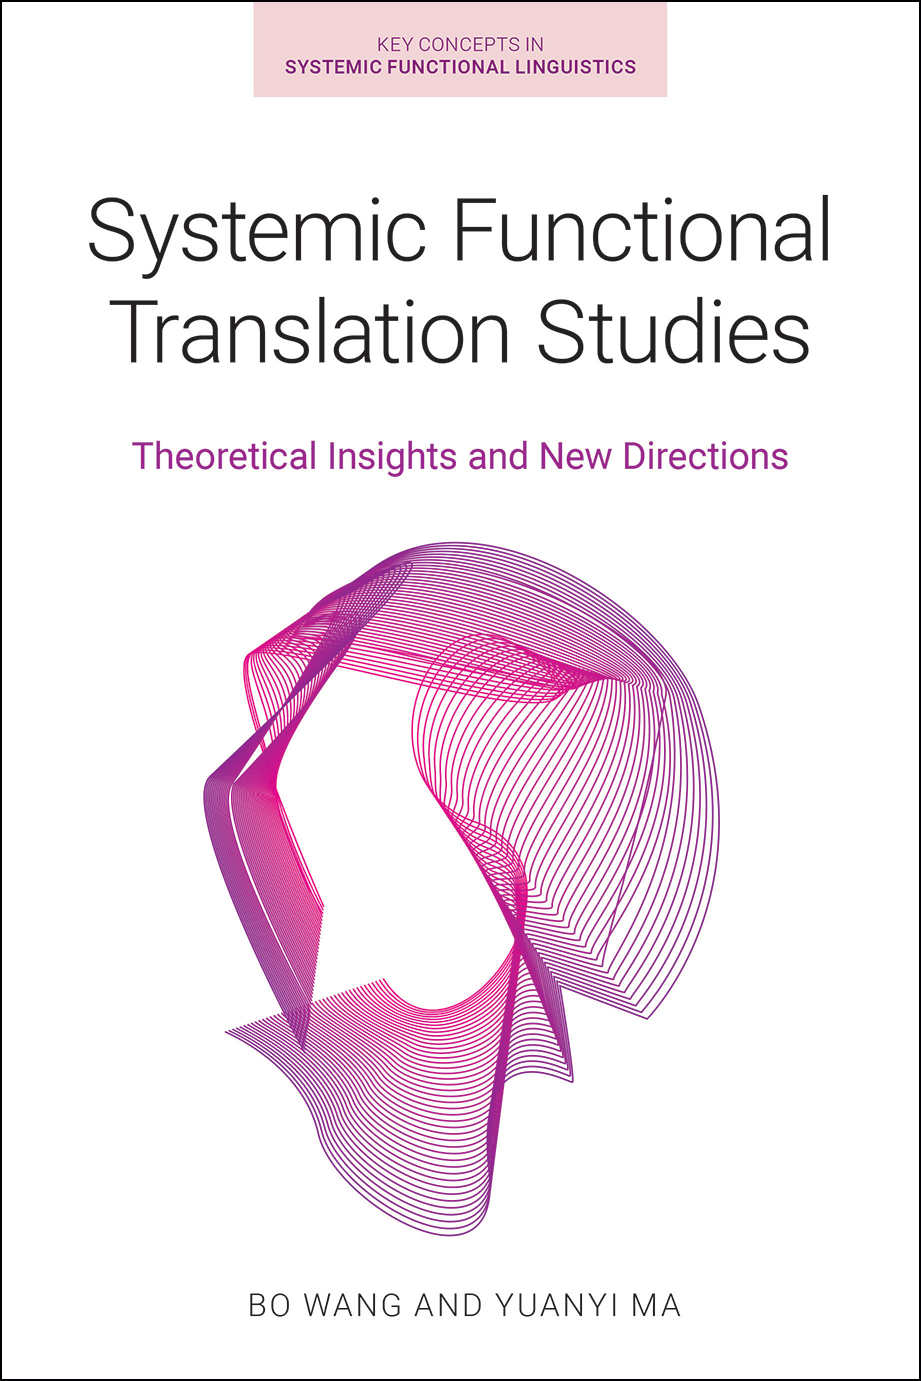 Systemic Functional Translation Studies